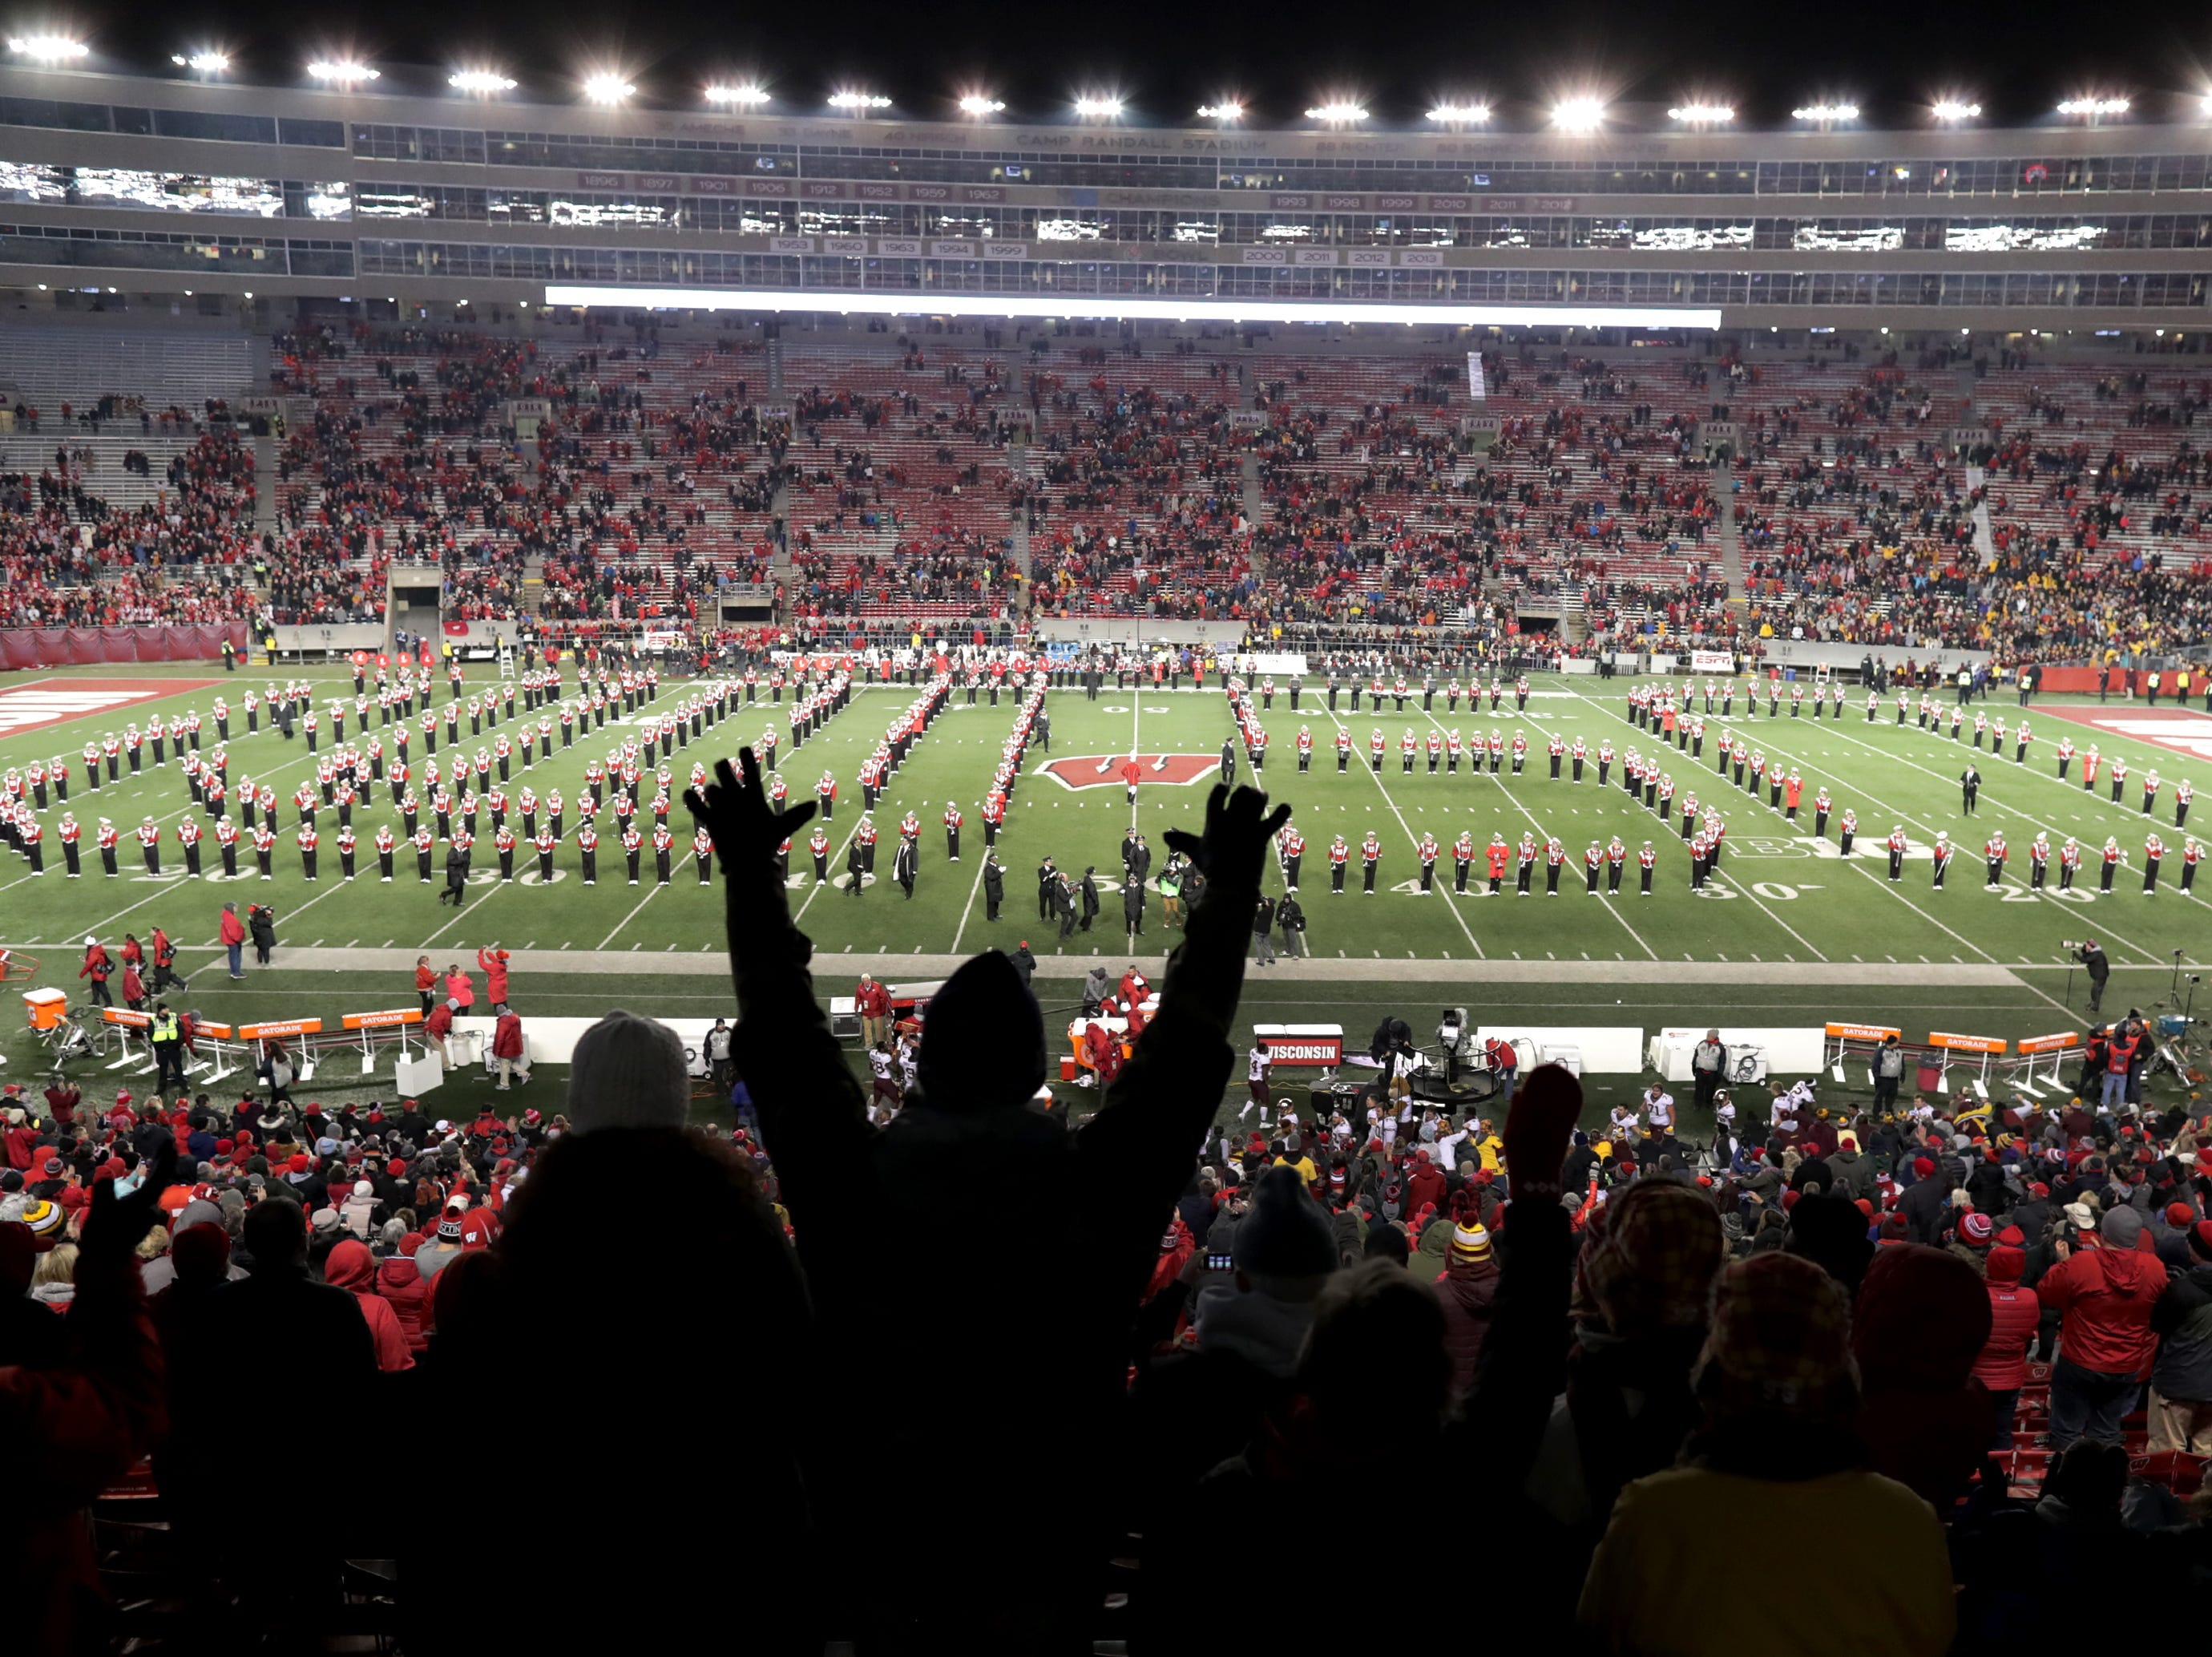 The University of Wisconsin Marching Band pays tribute to Director Michael Leckrone during the Fifth Quarter following the Wisconsin Badgers loss to the Minnesota Gophers on Saturday, November 24, 2018, at Camp Randall in Madison, Wis. Leckrone is retiring after fifty years as leader of the band.Wm. Glasheen/USA TODAY NETWORK-Wisconsin.